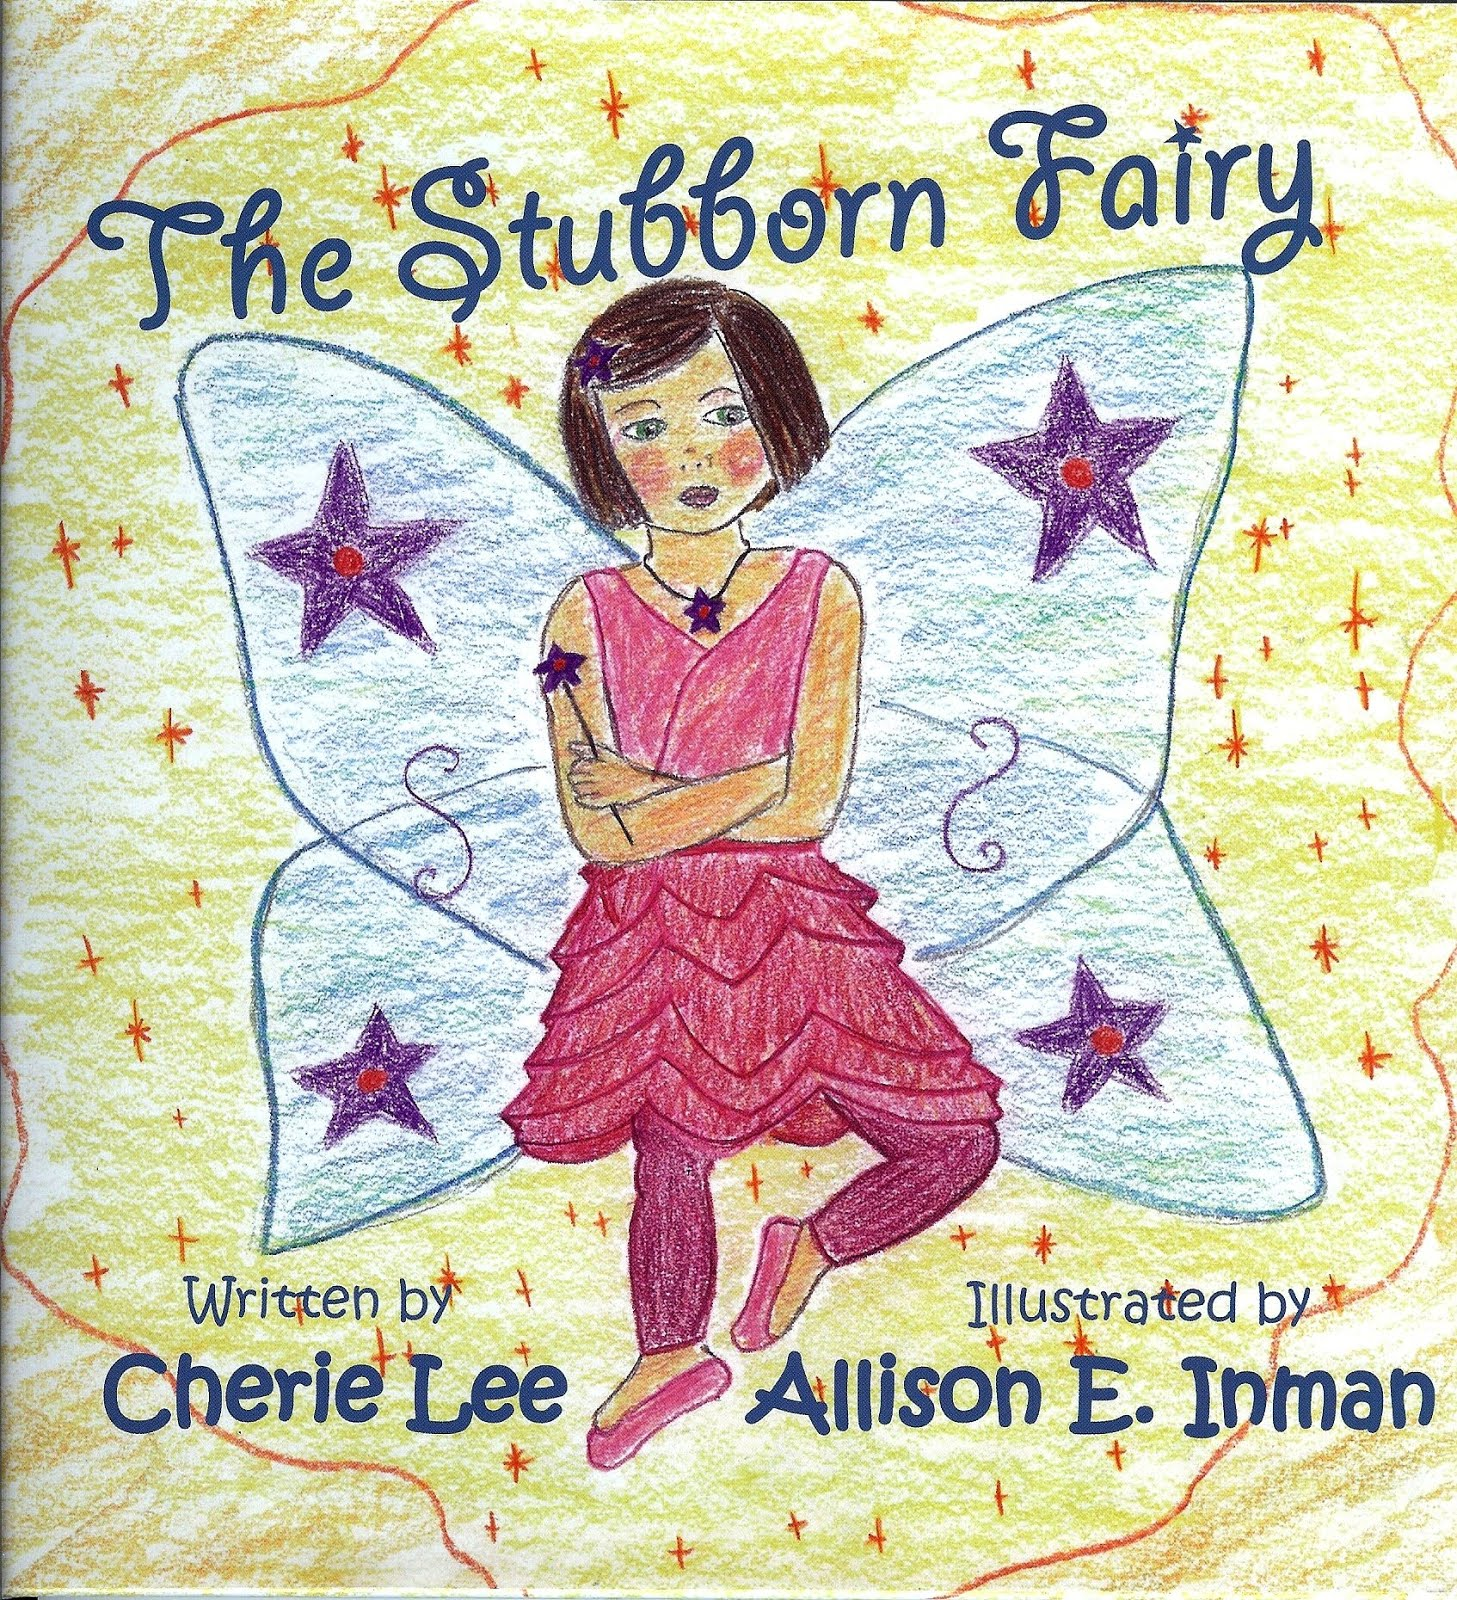 The Stubborn Fairy